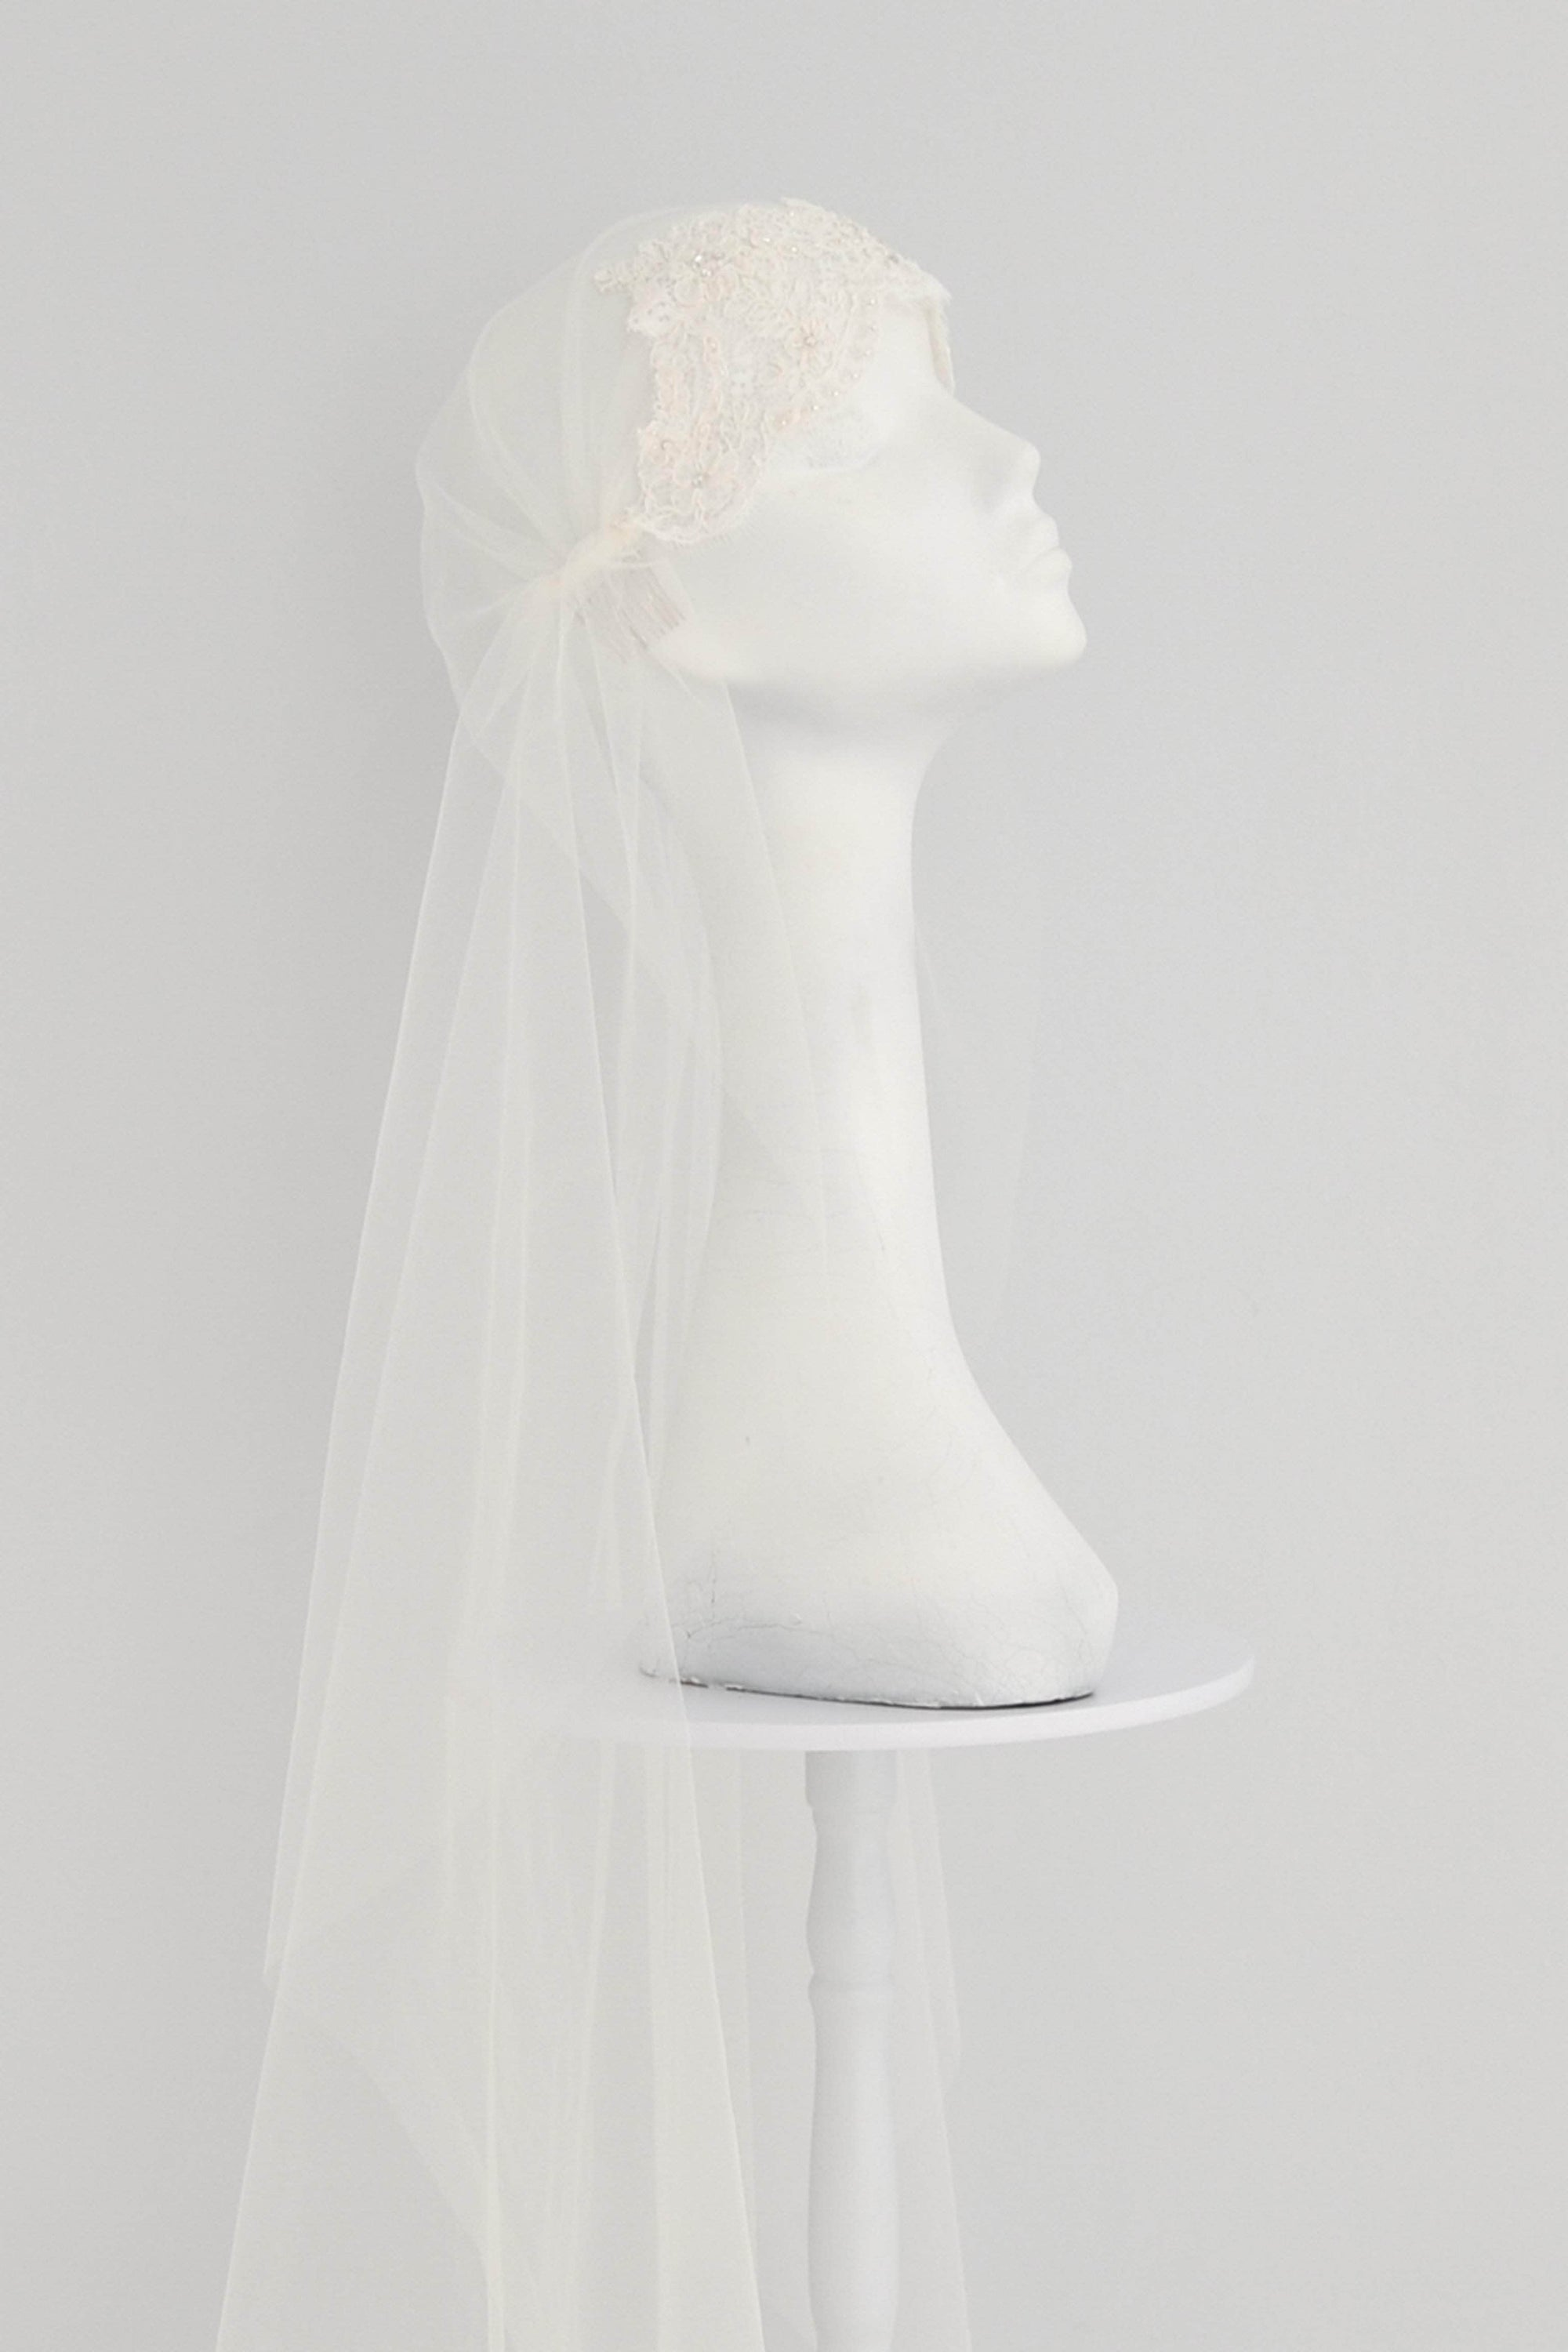 Beaded lace Juliet cap wedding veil - 'Rene' - Britten Weddings